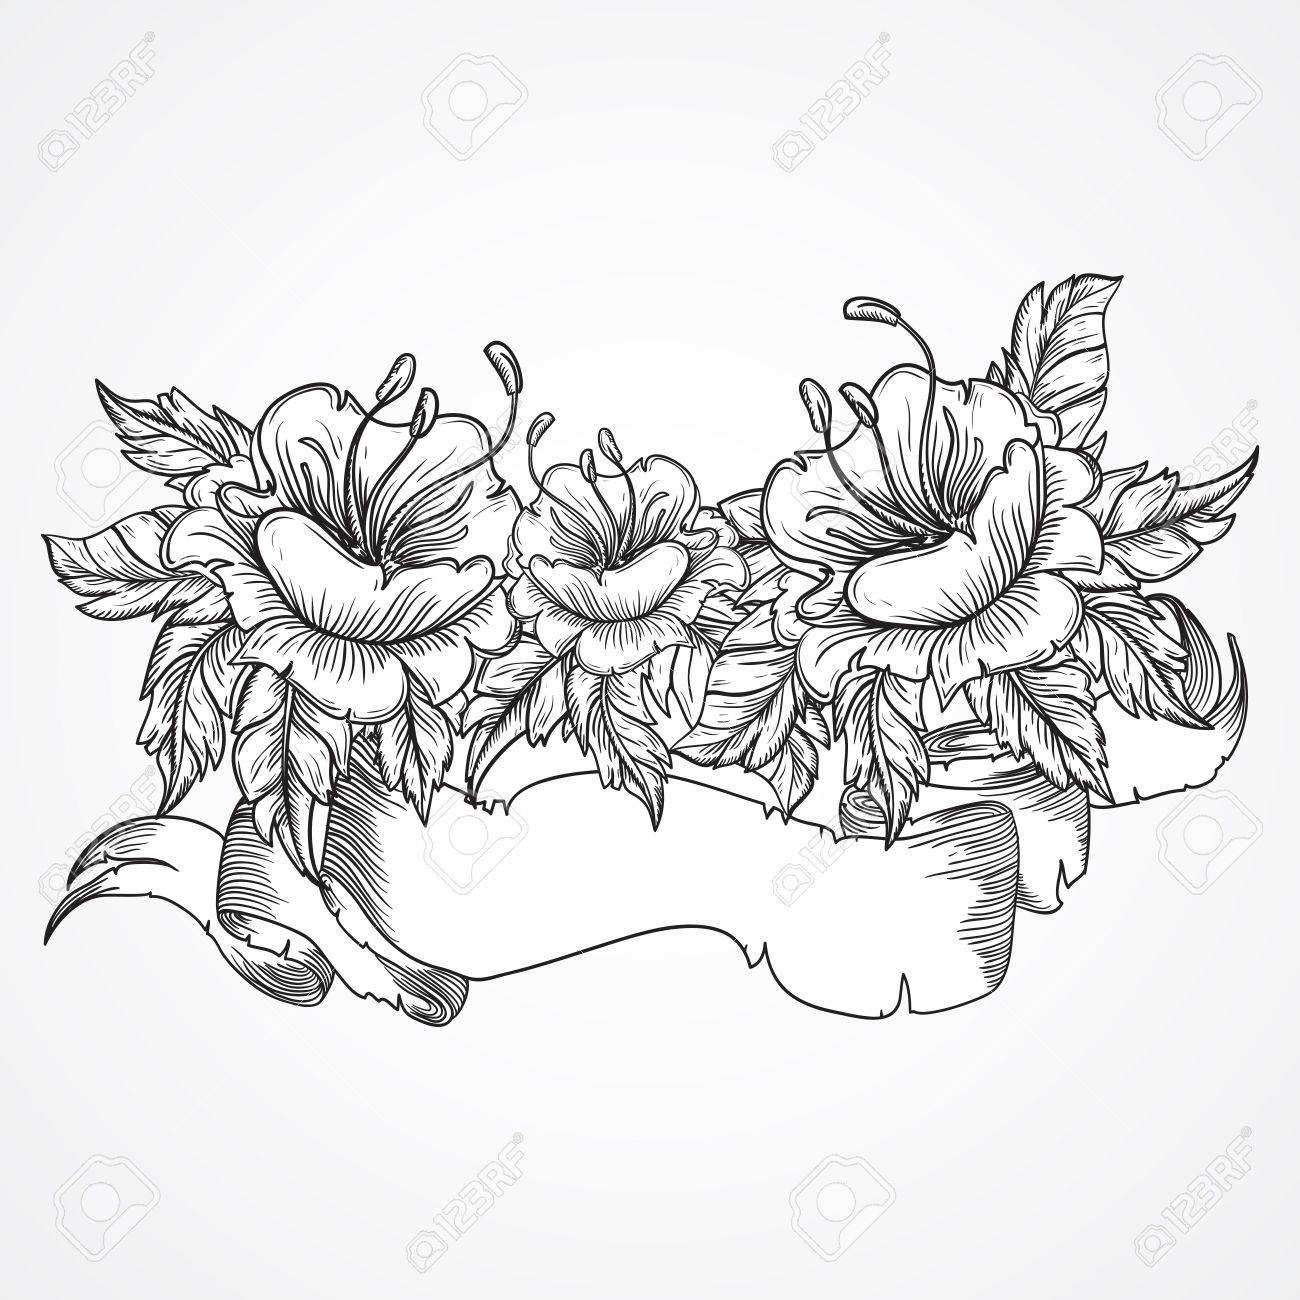 Vintage Floral Highly Detailed Hand Drawn Bouquet Of Flowers